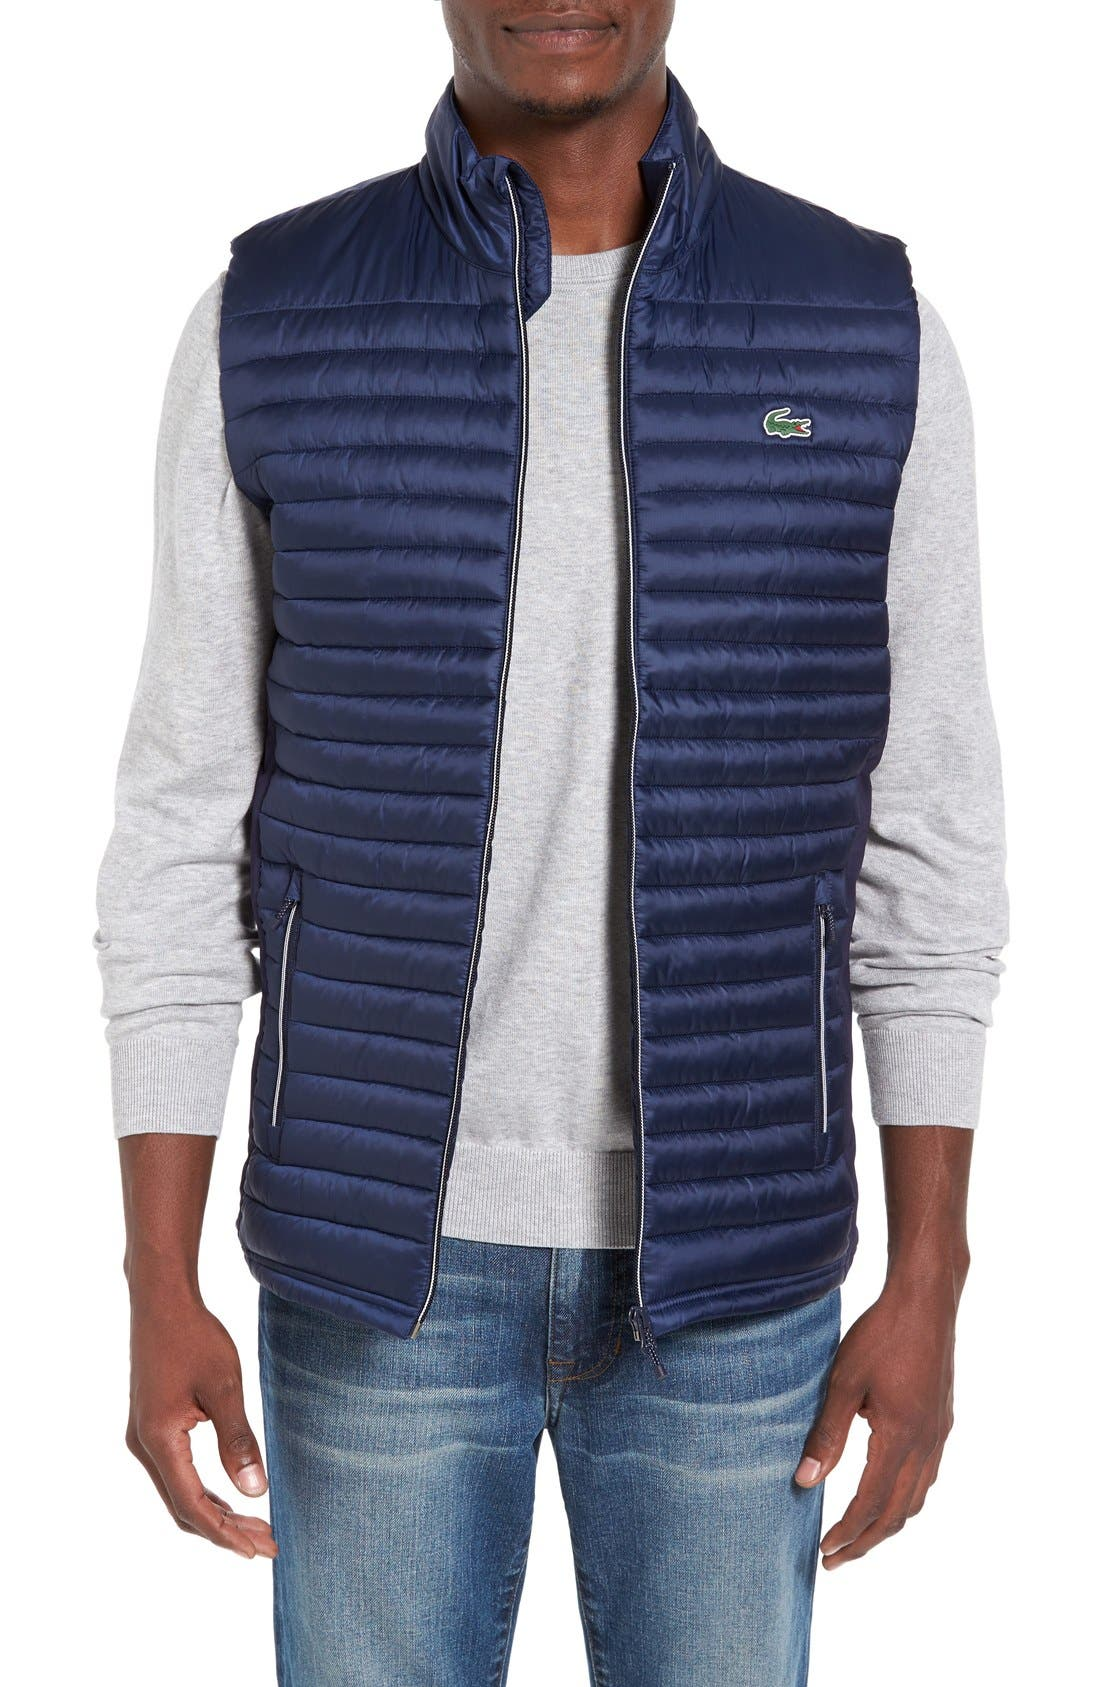 'Sport' Insulated Vest,                         Main,                         color, Navy Blue/ Navy Blue